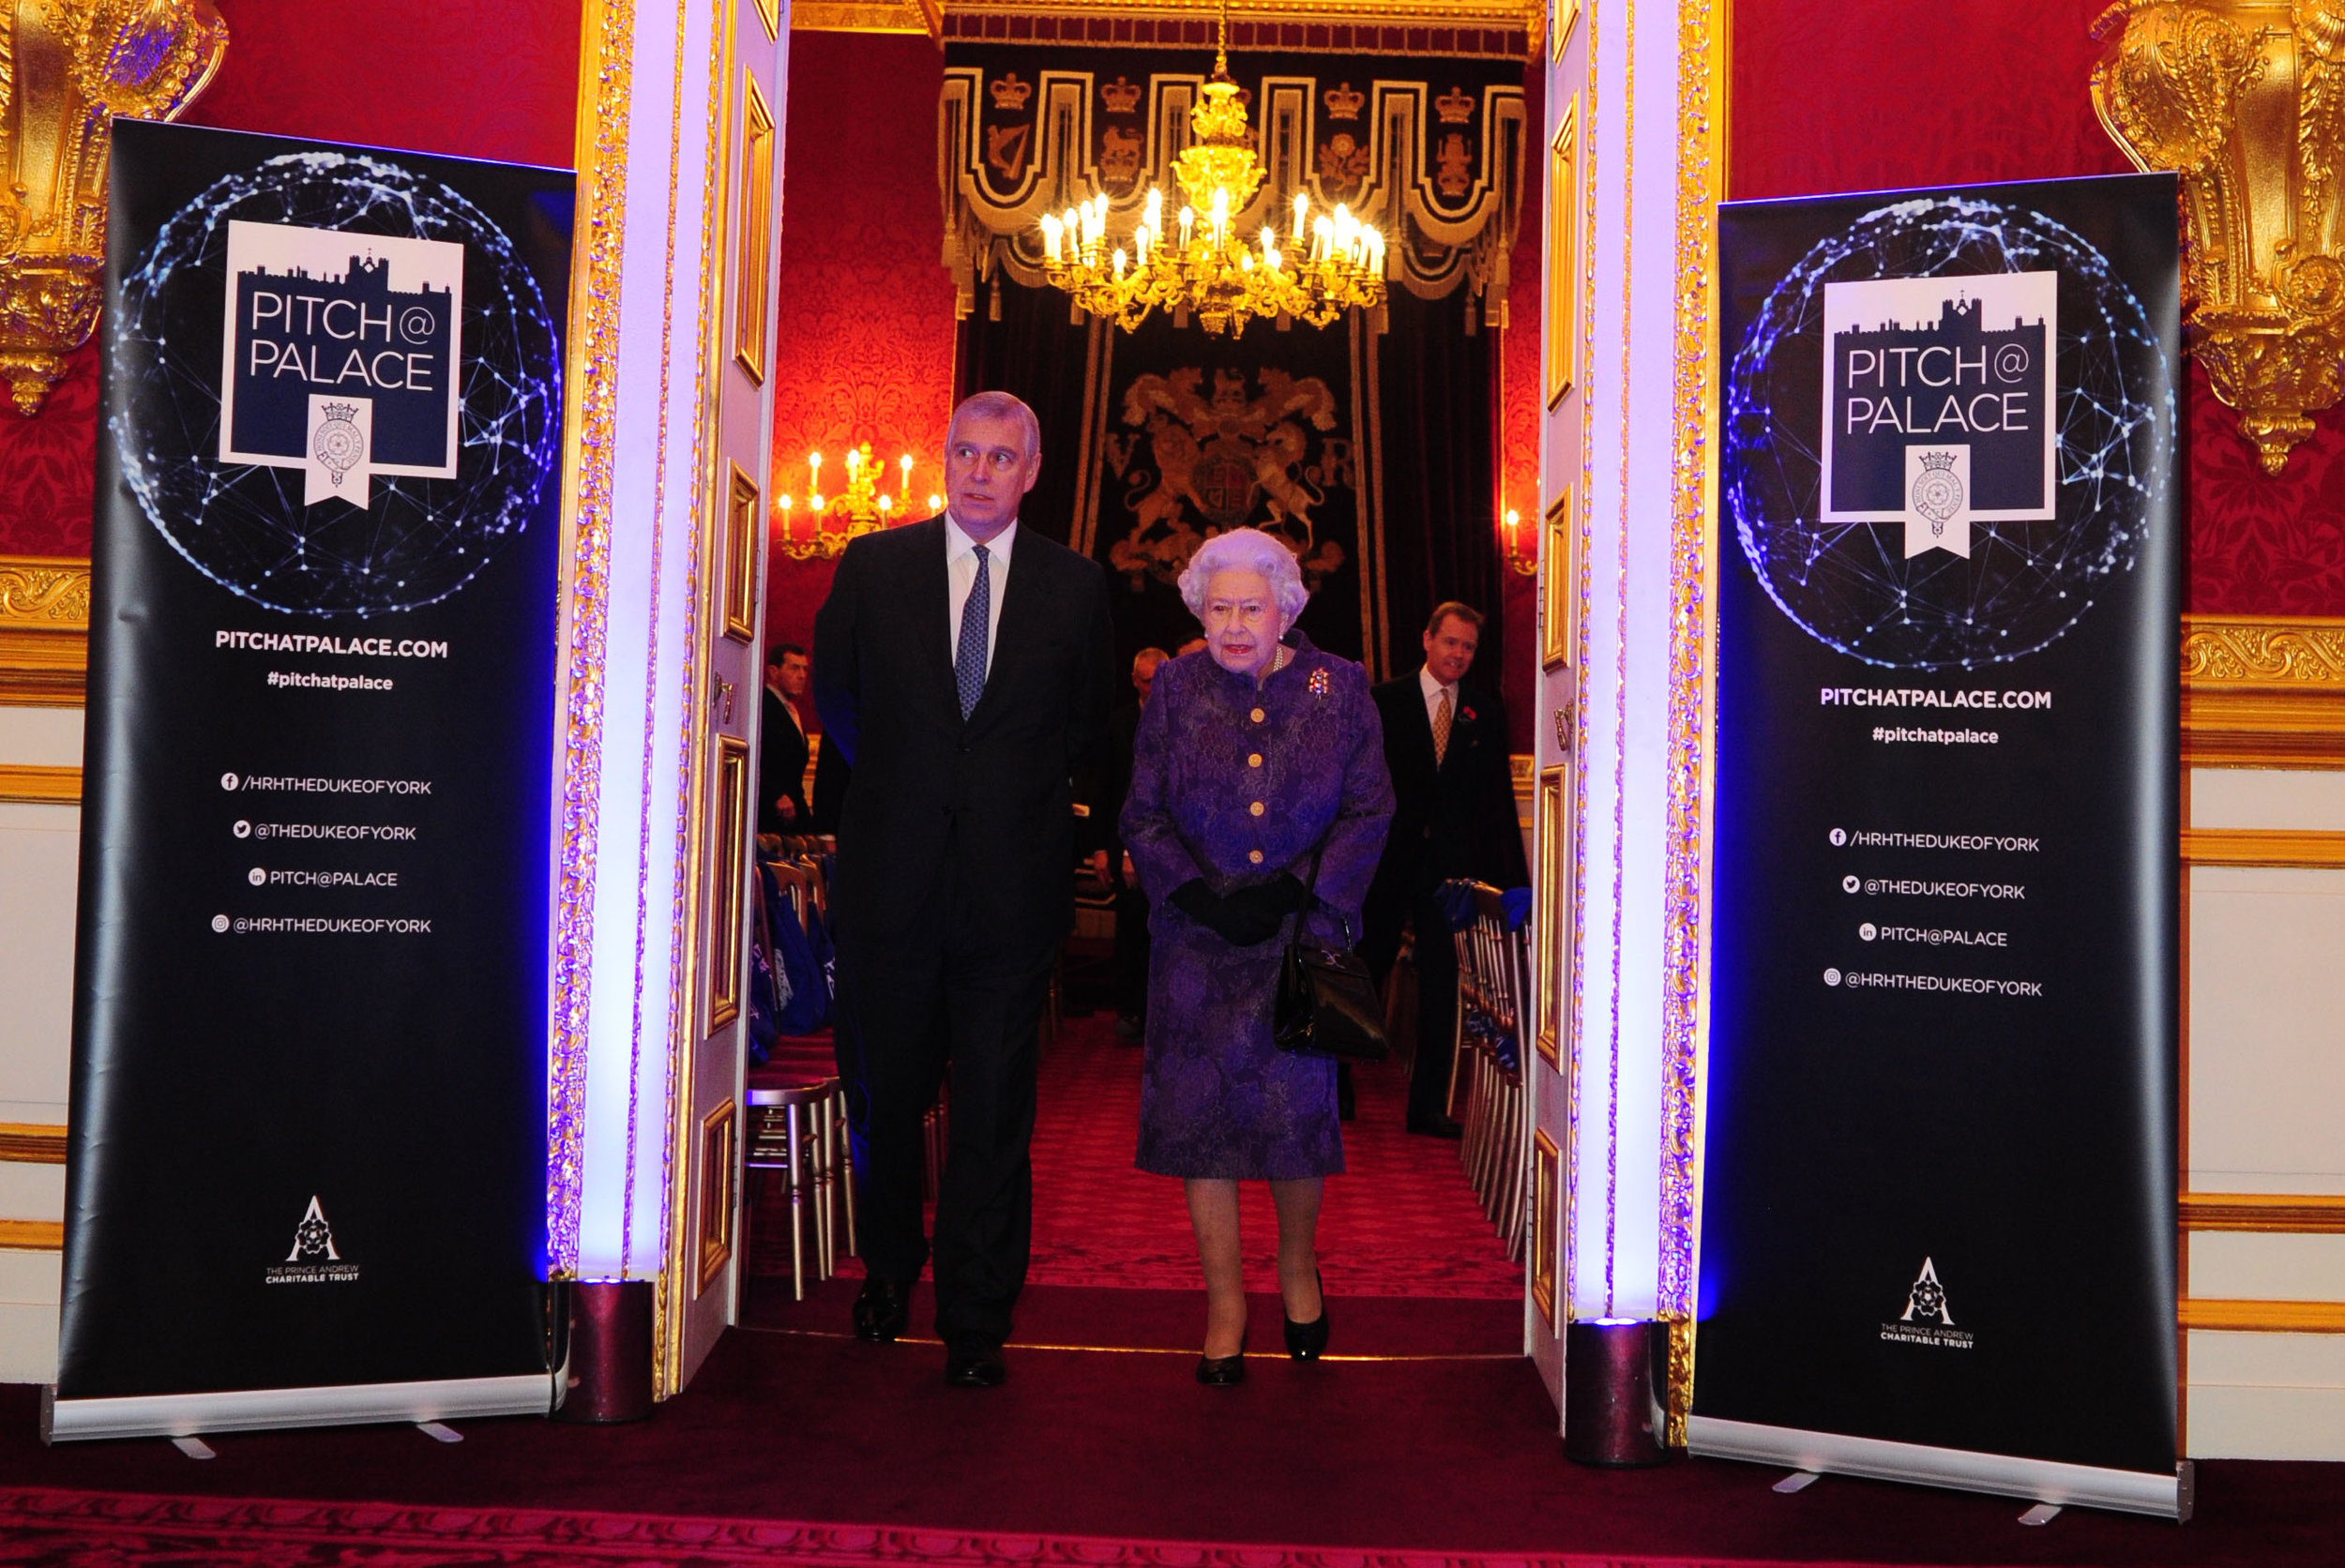 Pitch-at-Palace-Duke-of-York-Queen-Elizabeth.jpg